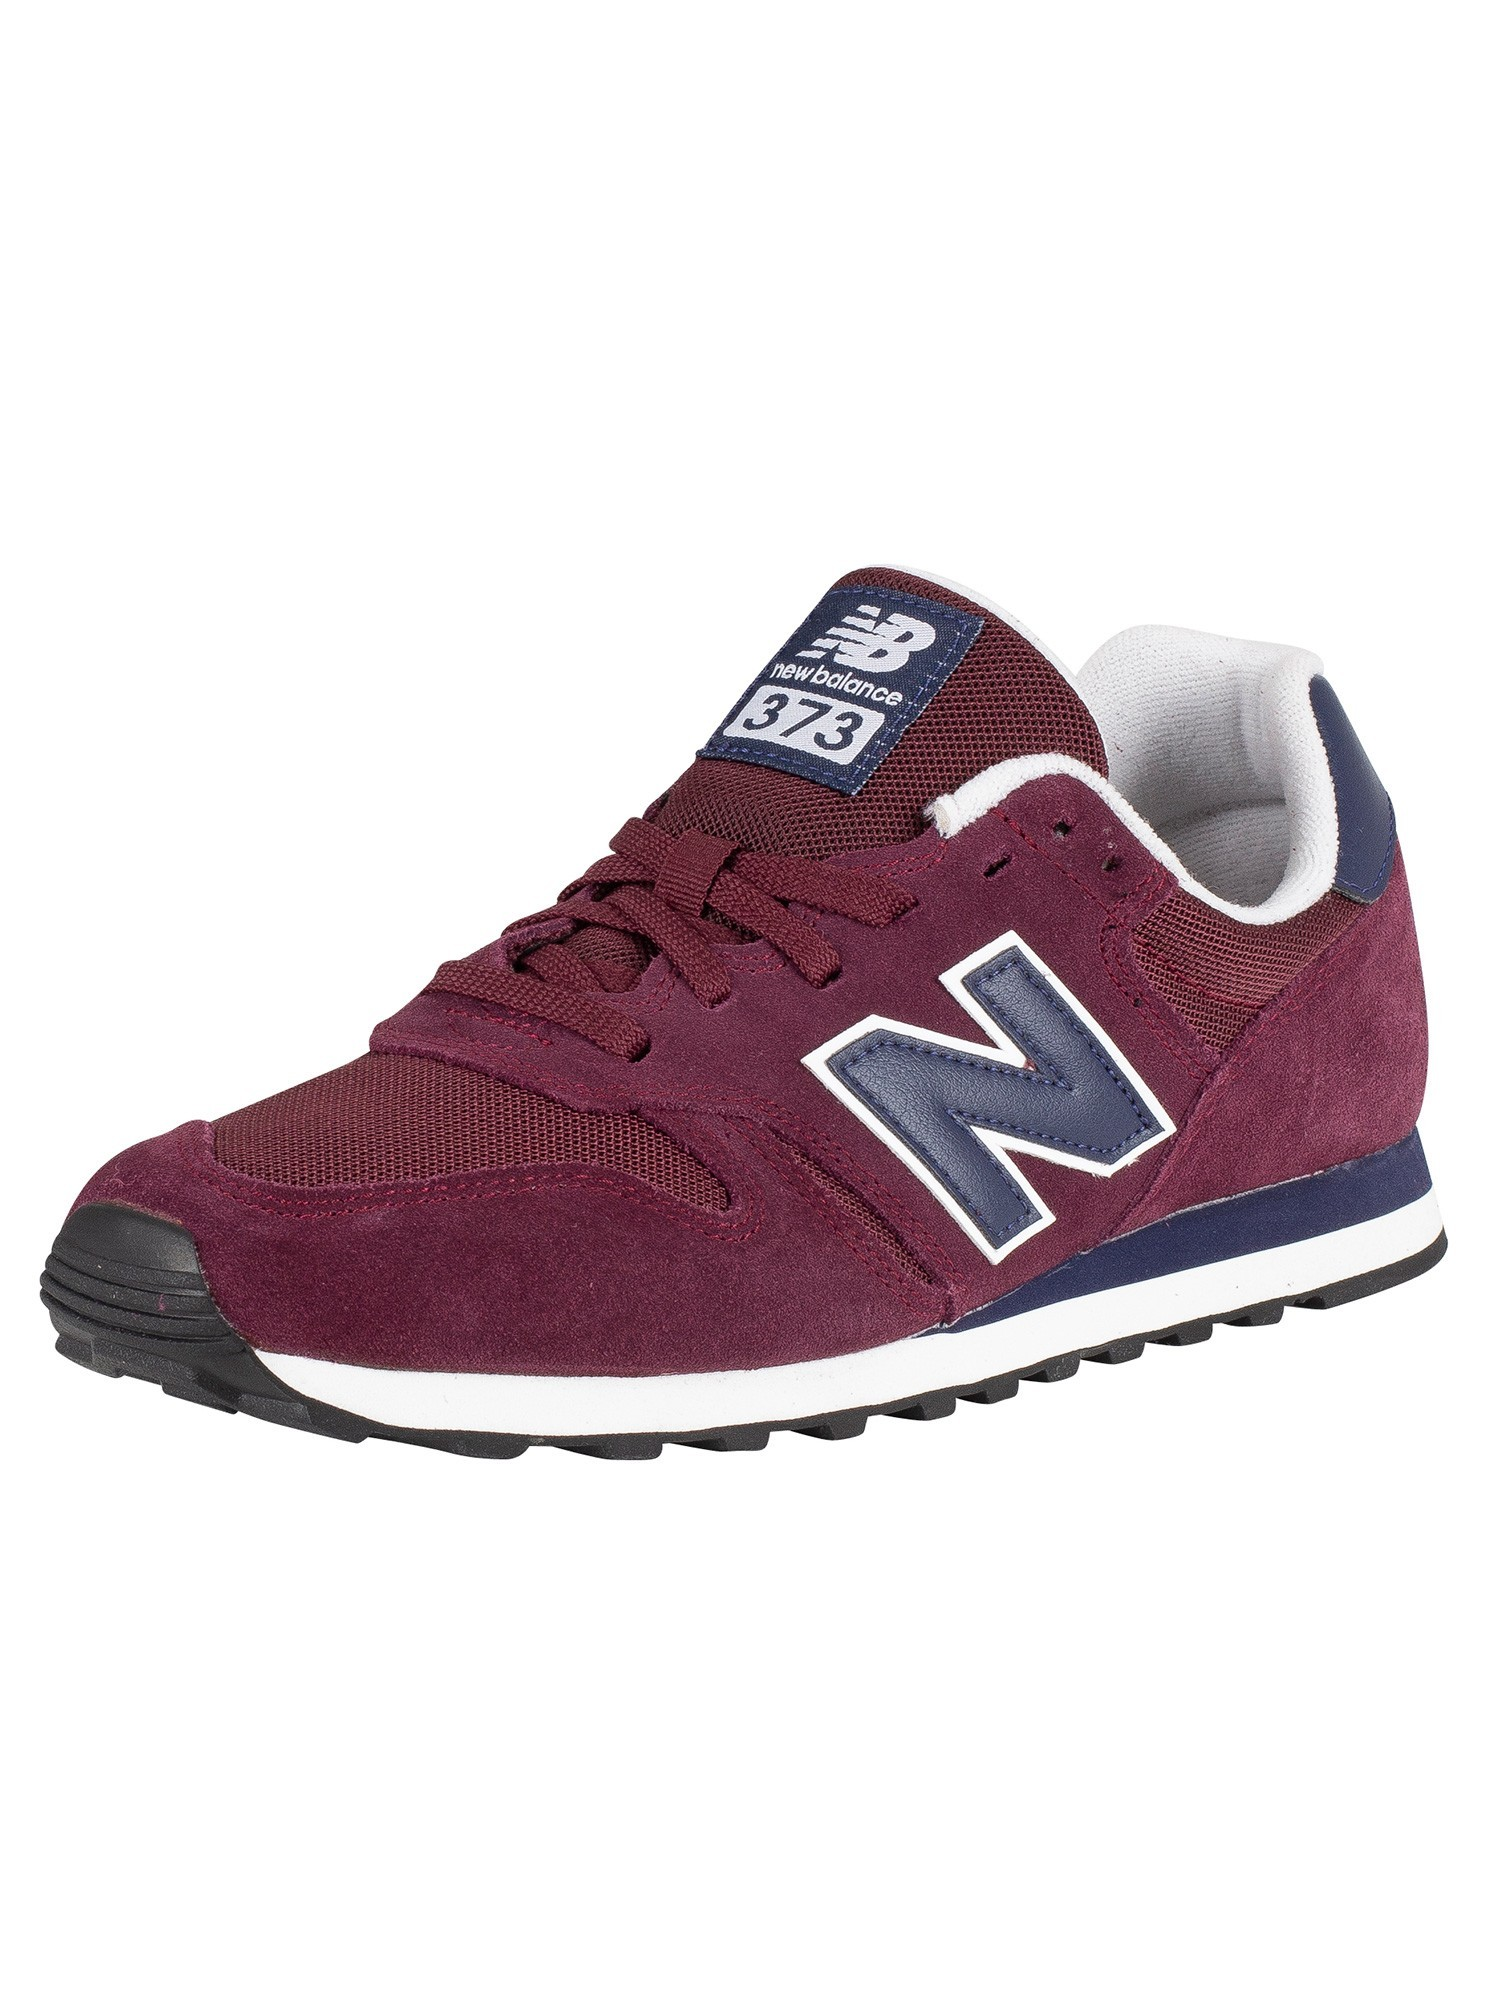 newest 49b01 897ee New Balance 373 Suede Trainers - Burgundy/Navy